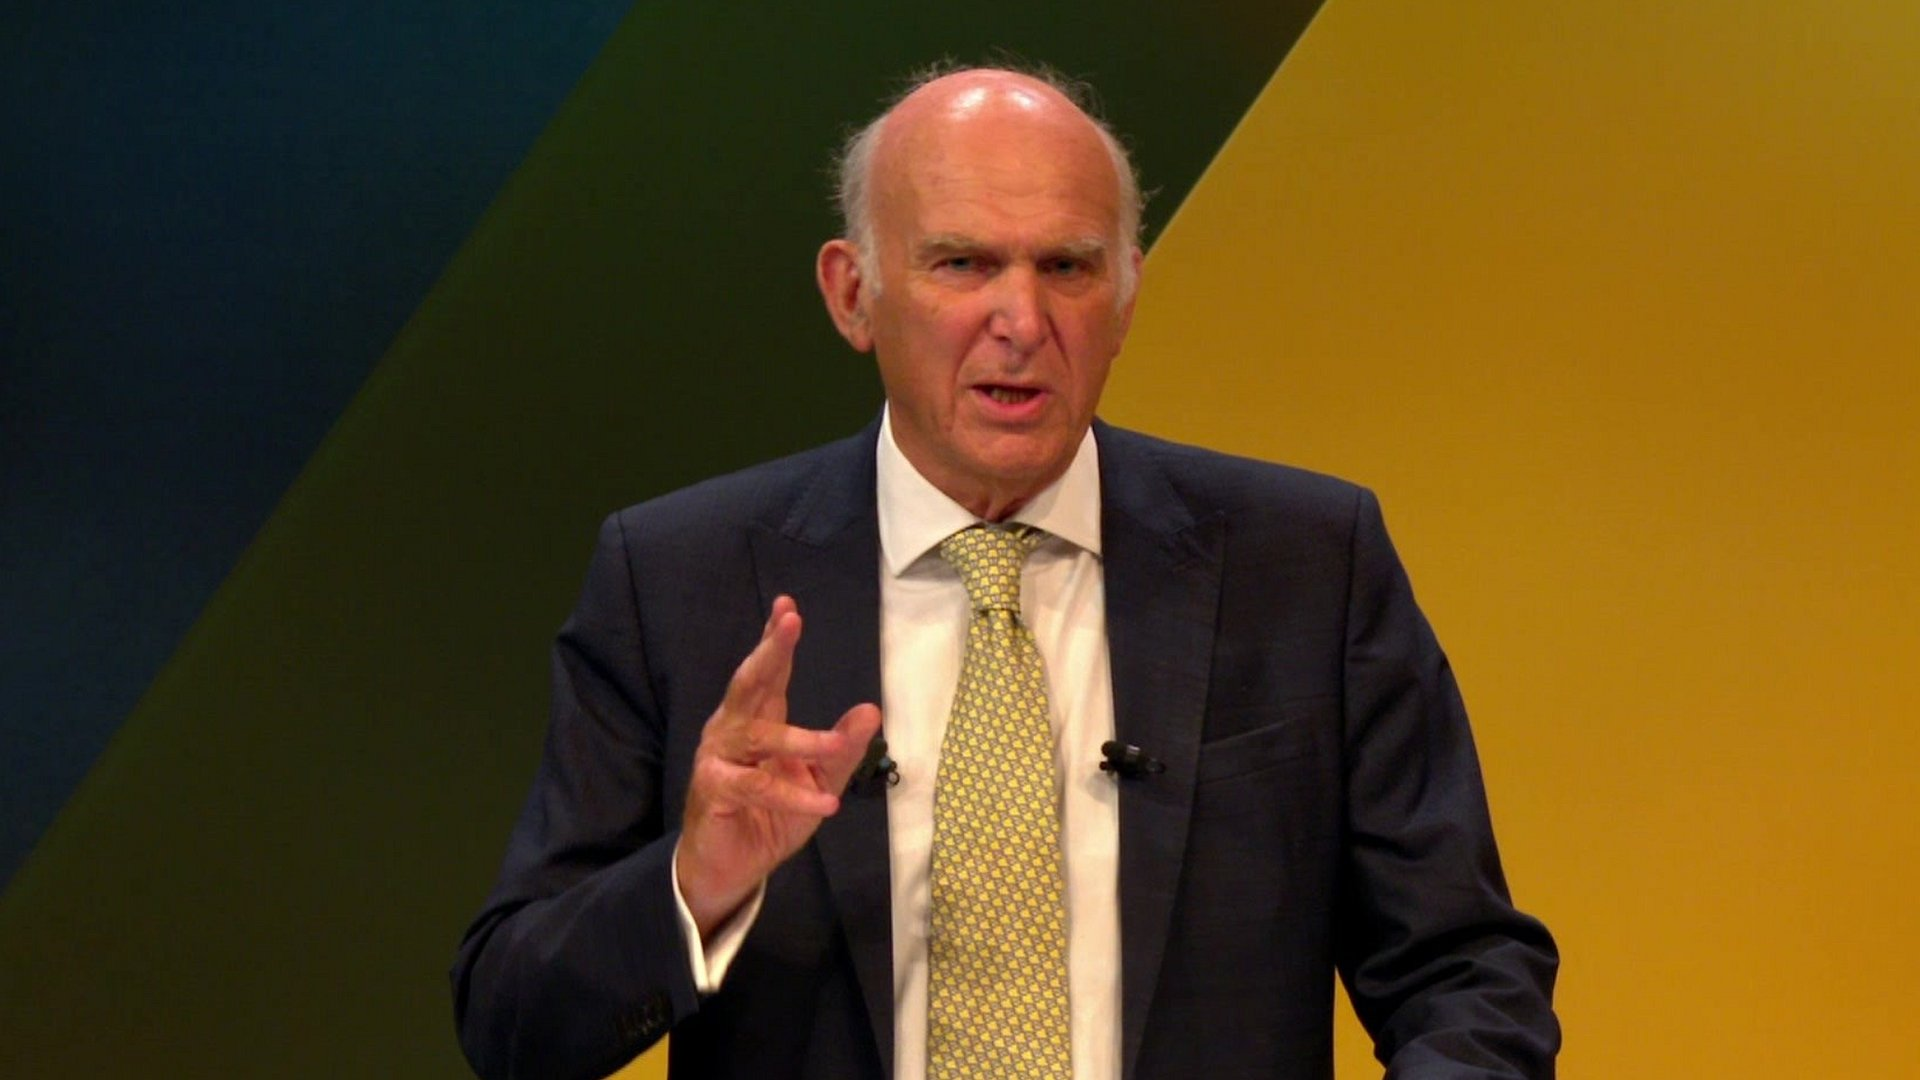 Sir Vince Cable Lib Dem conference speech focuses on Brexit